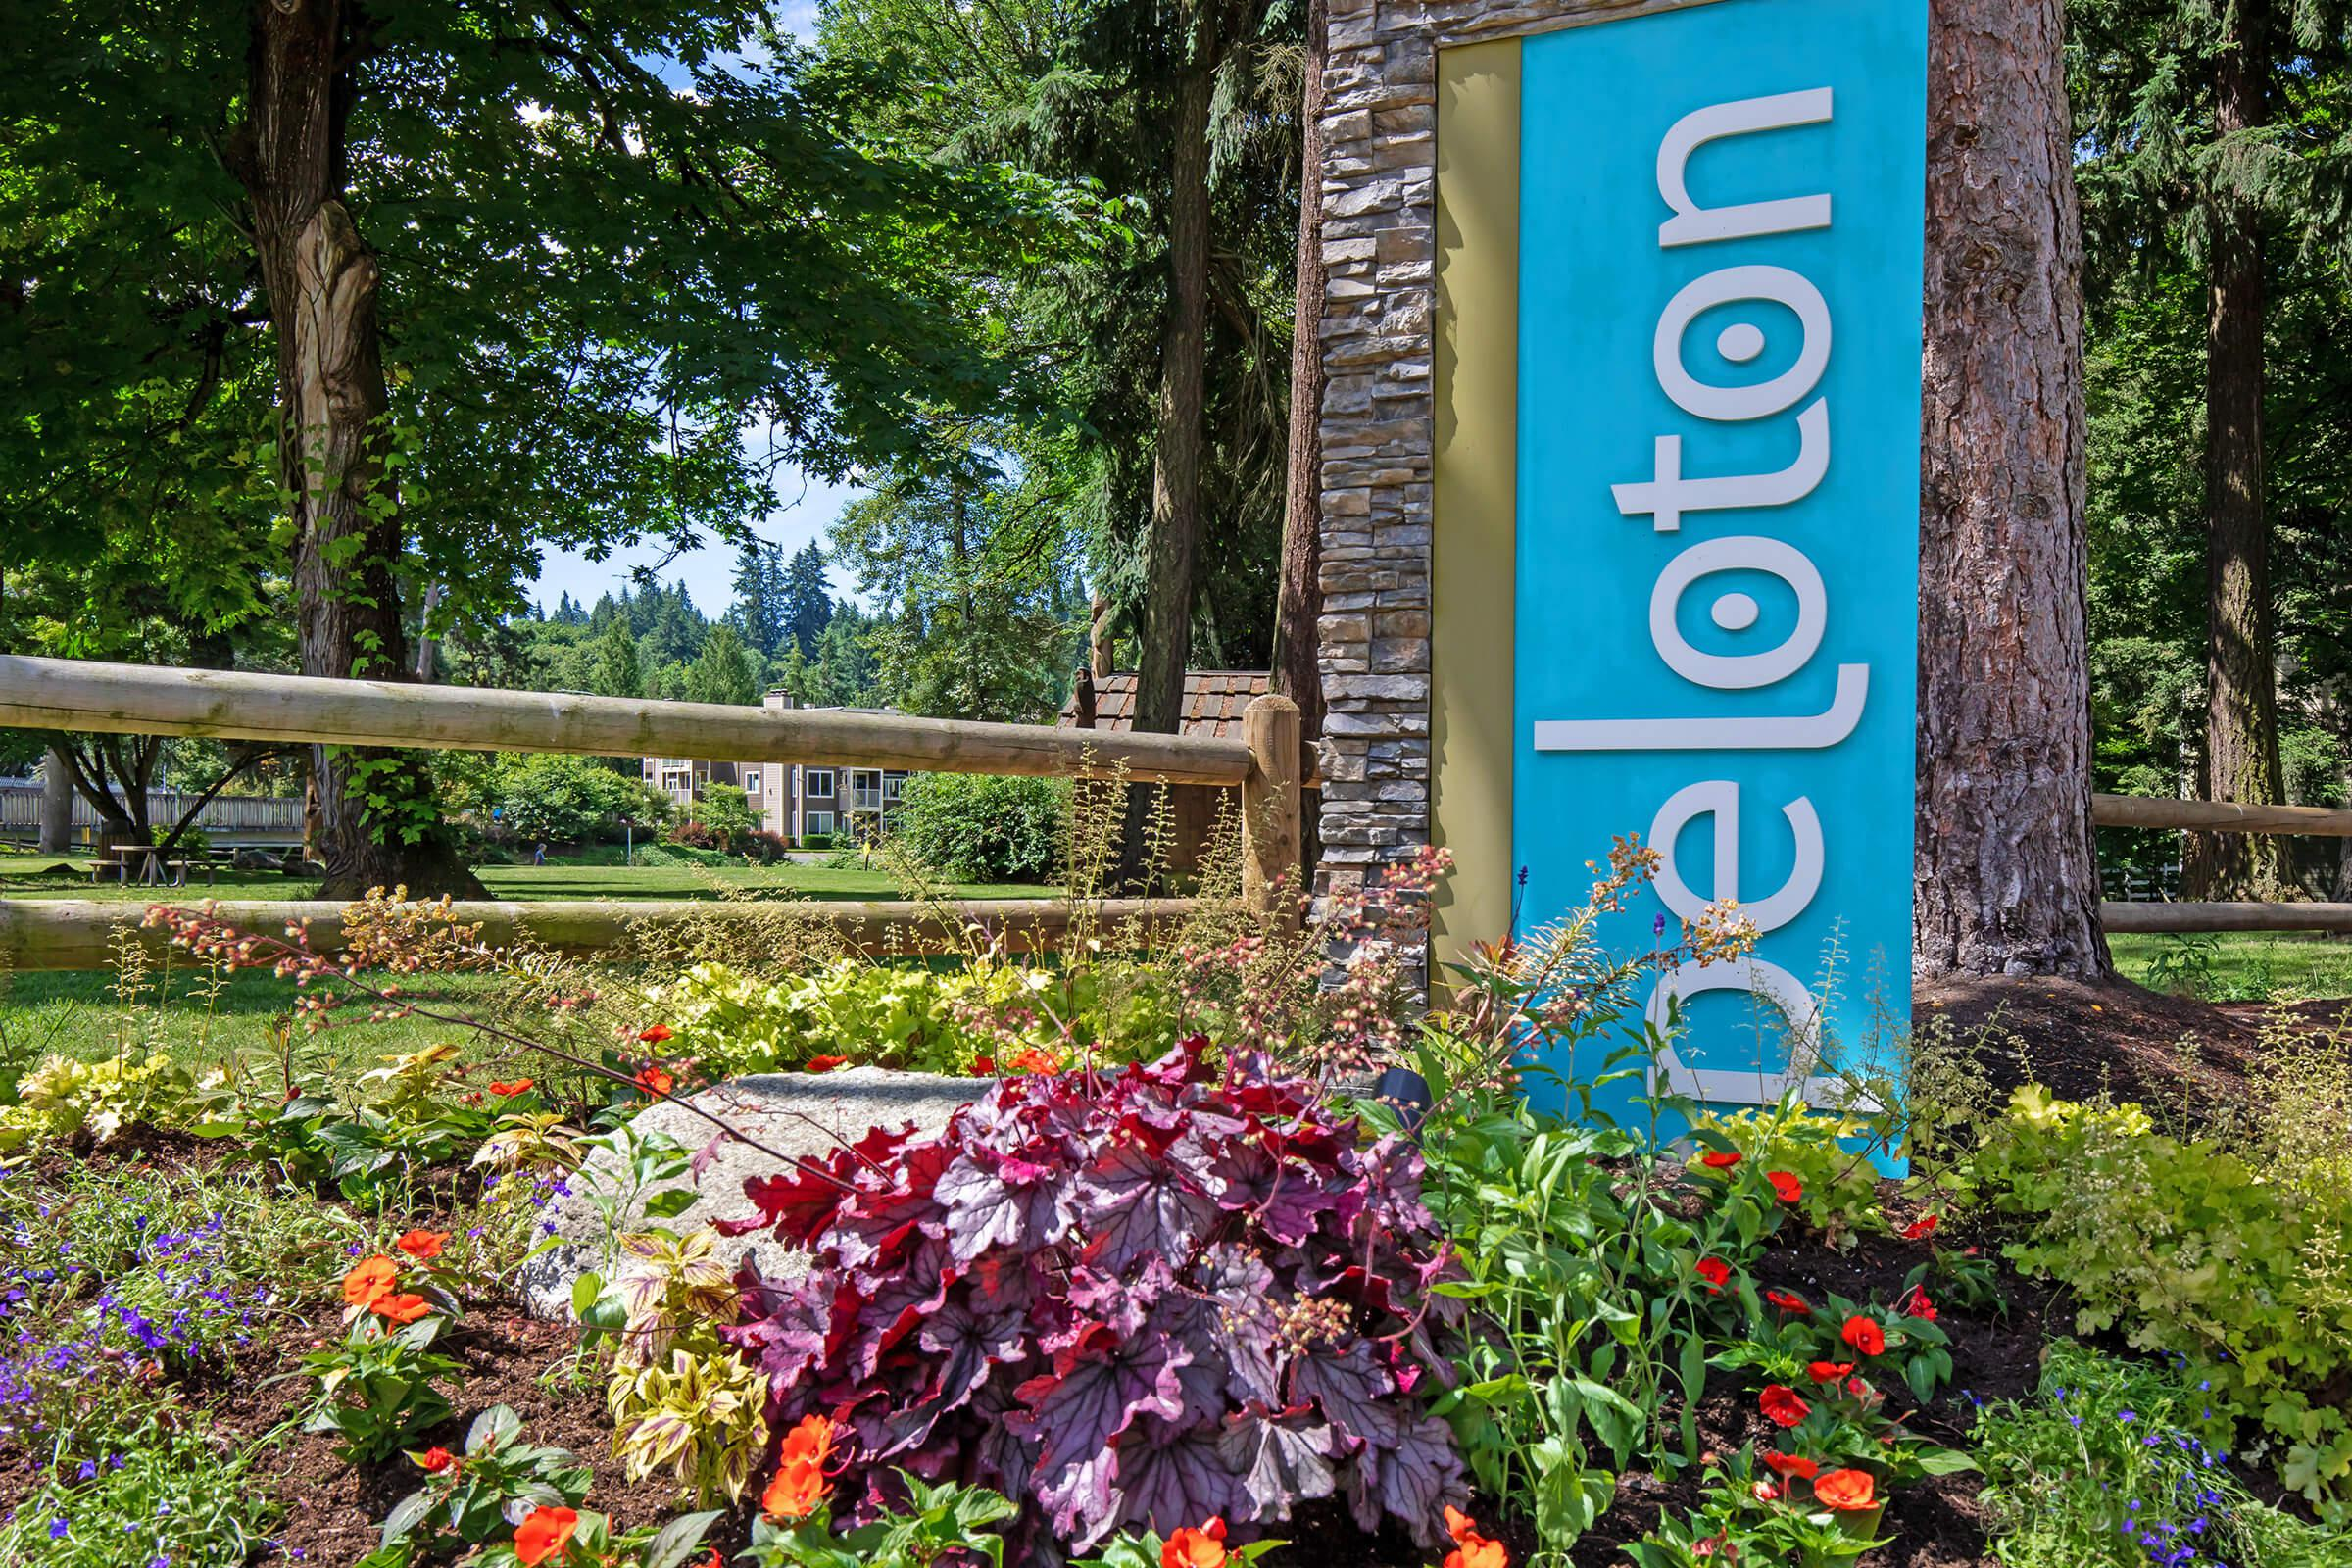 a sign in front of a flower garden